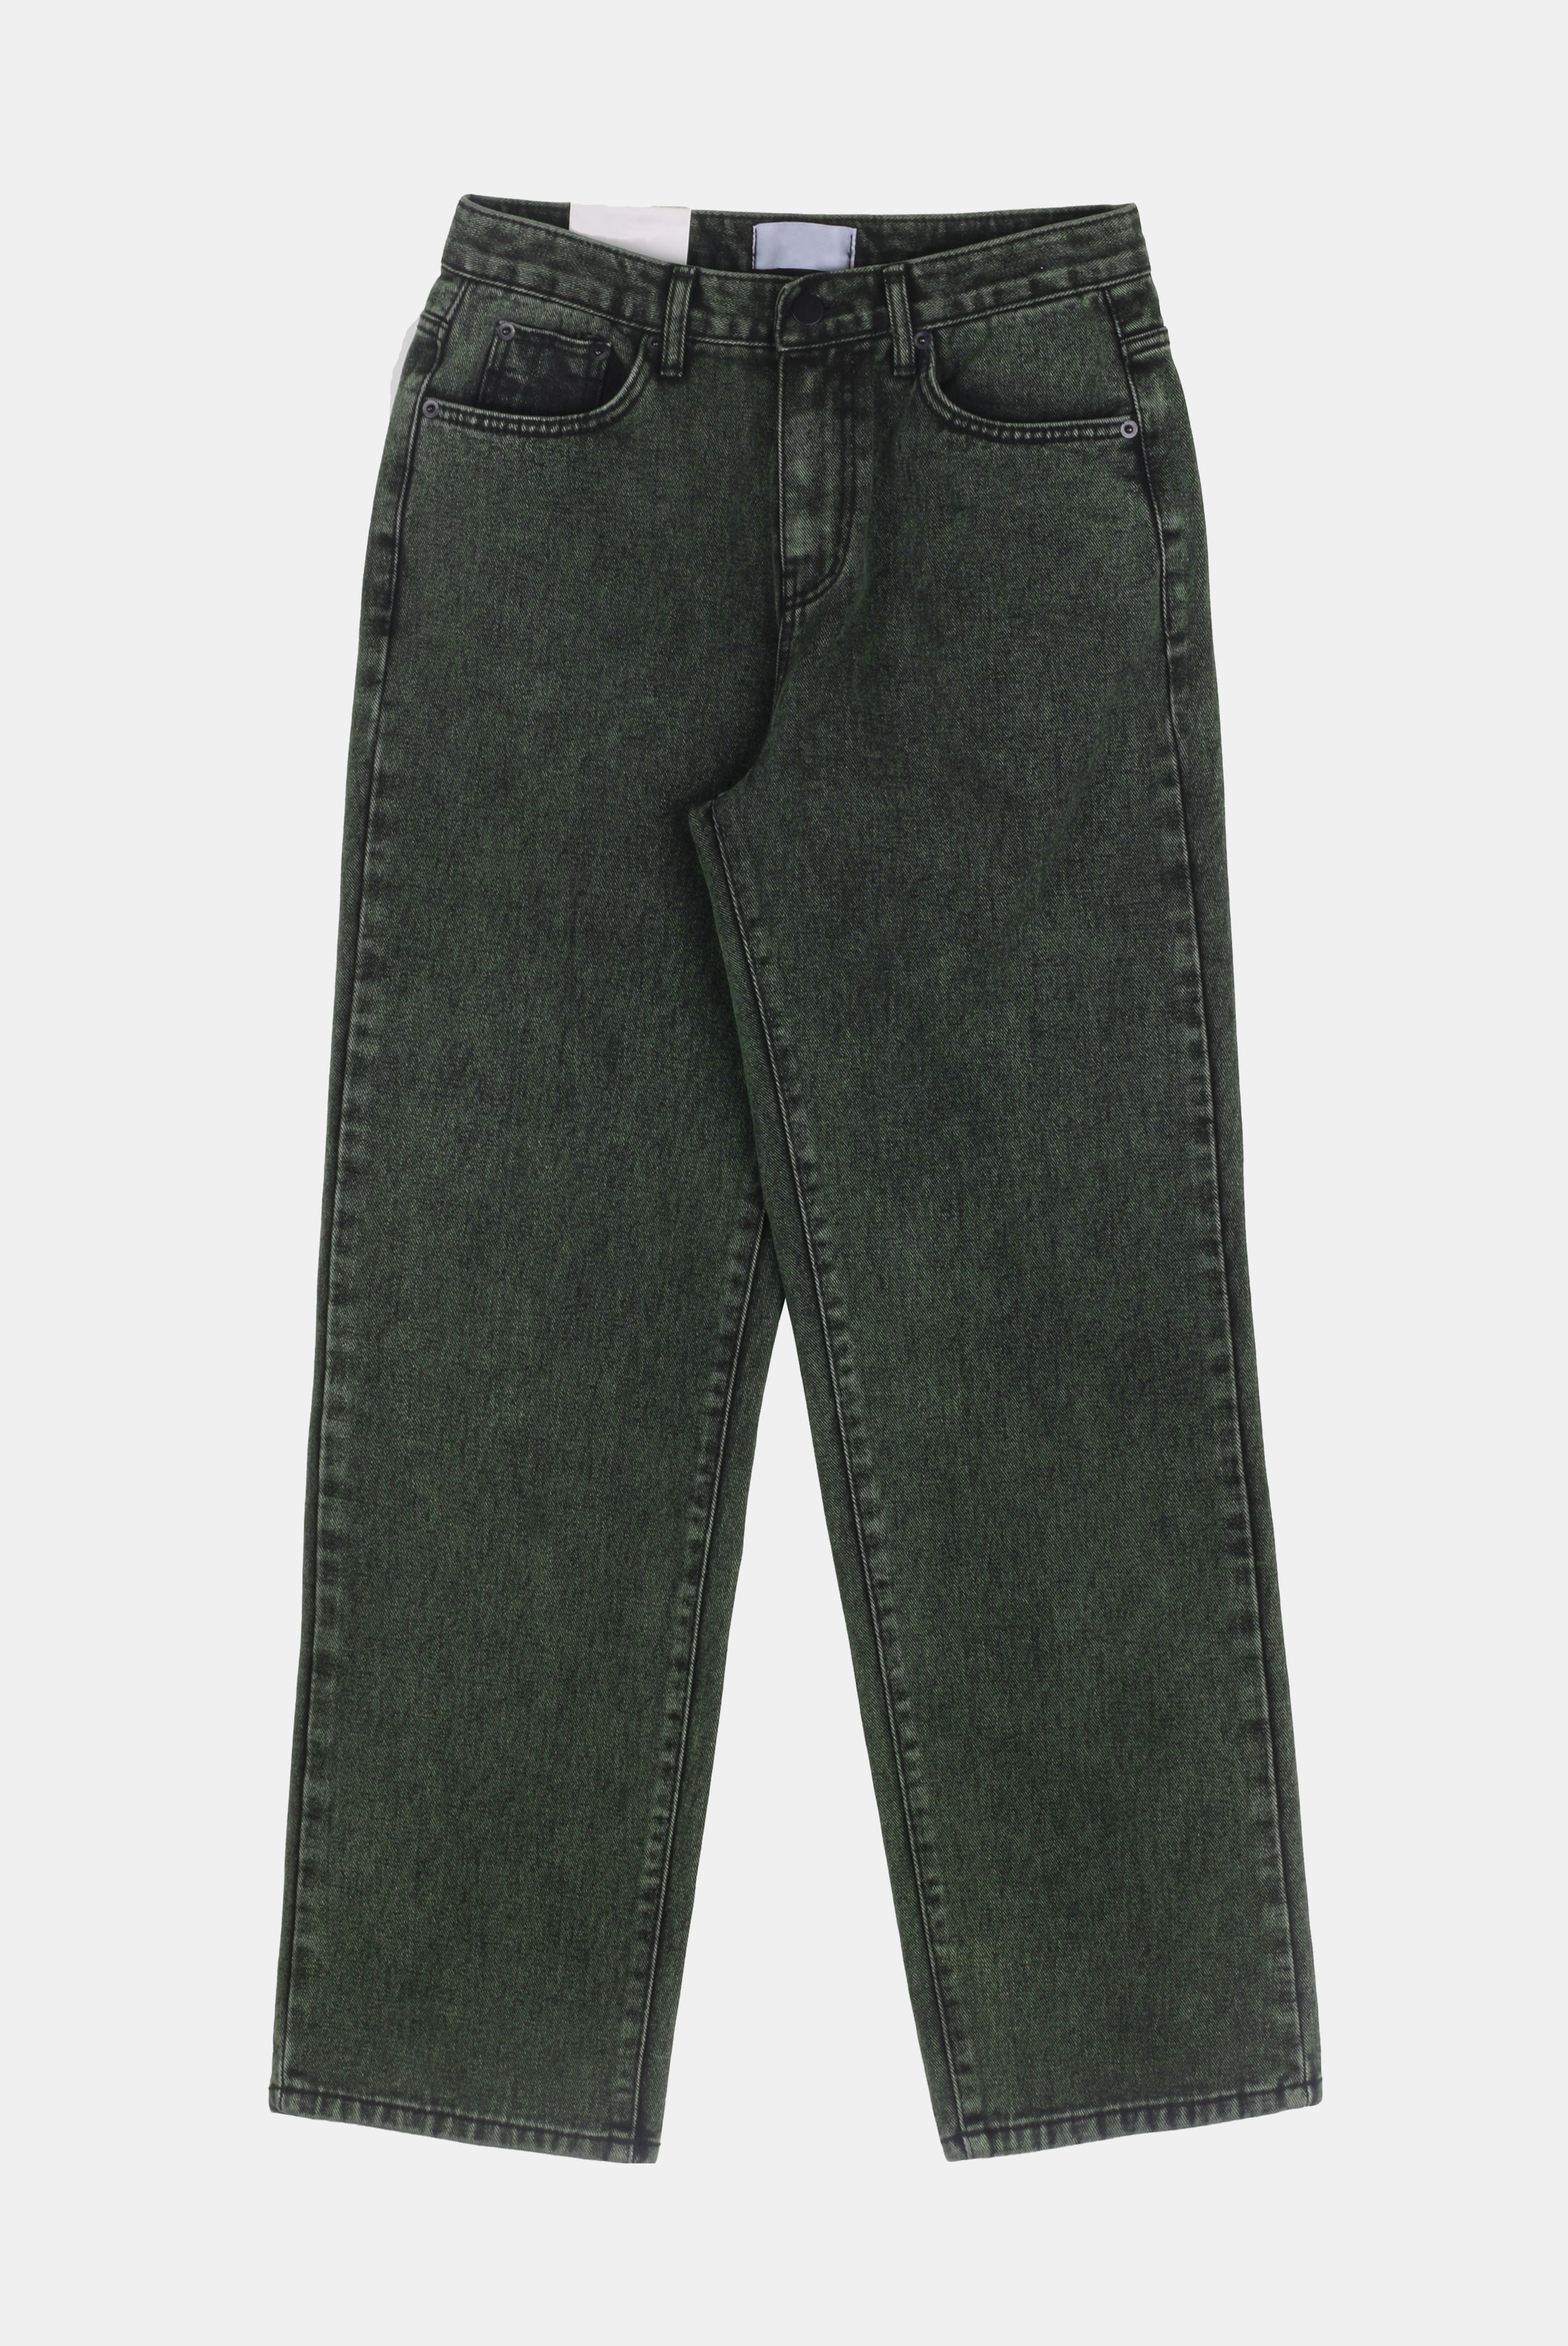 Khaki_Dying Denim_Pants